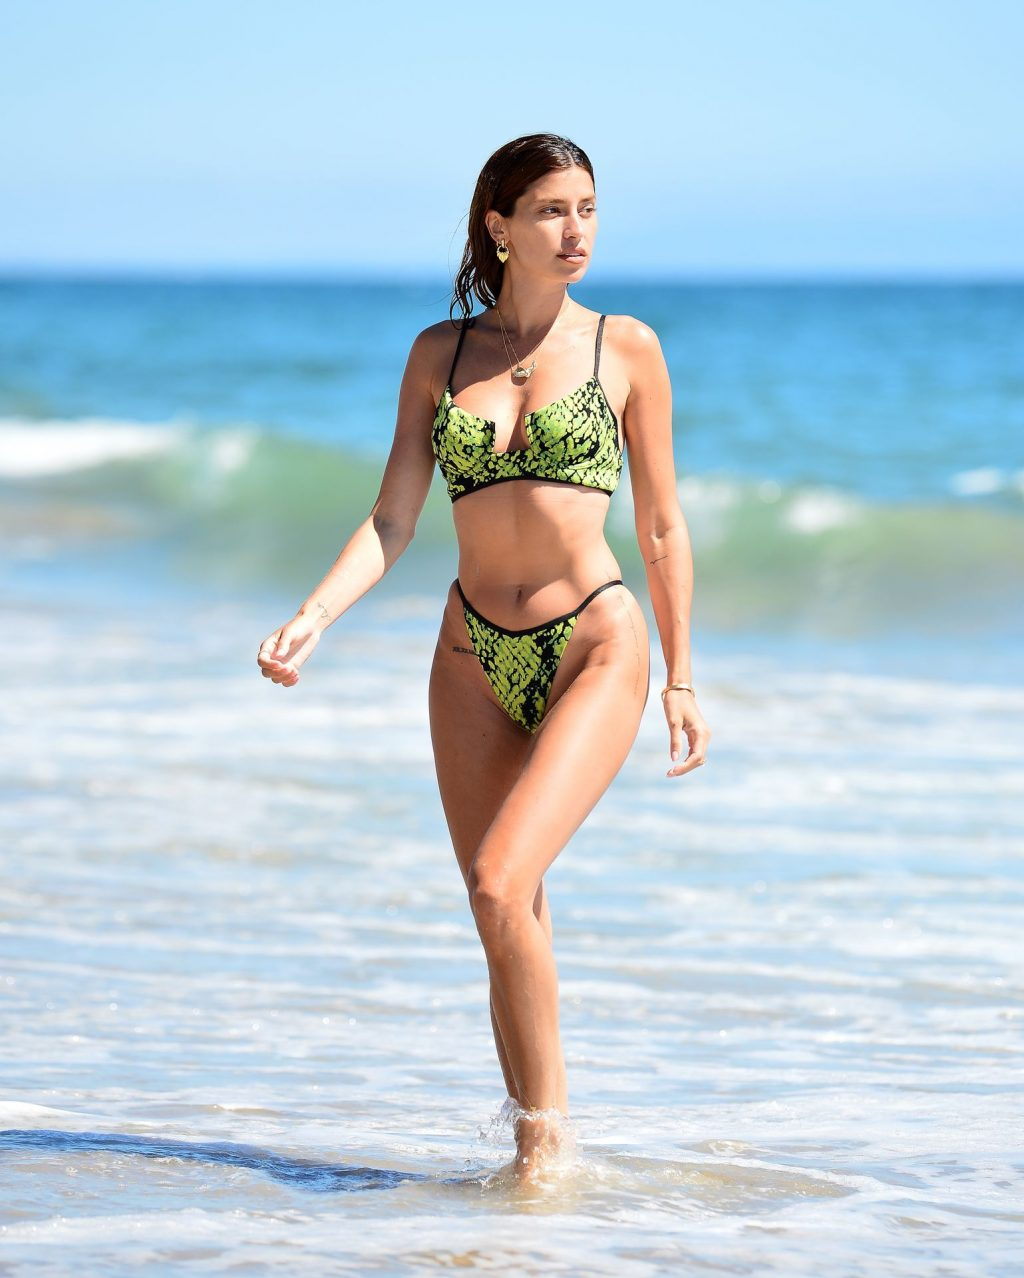 Nicole Williams Flaunts Her Incredible Bikini Body on the Beach (18 Photos)